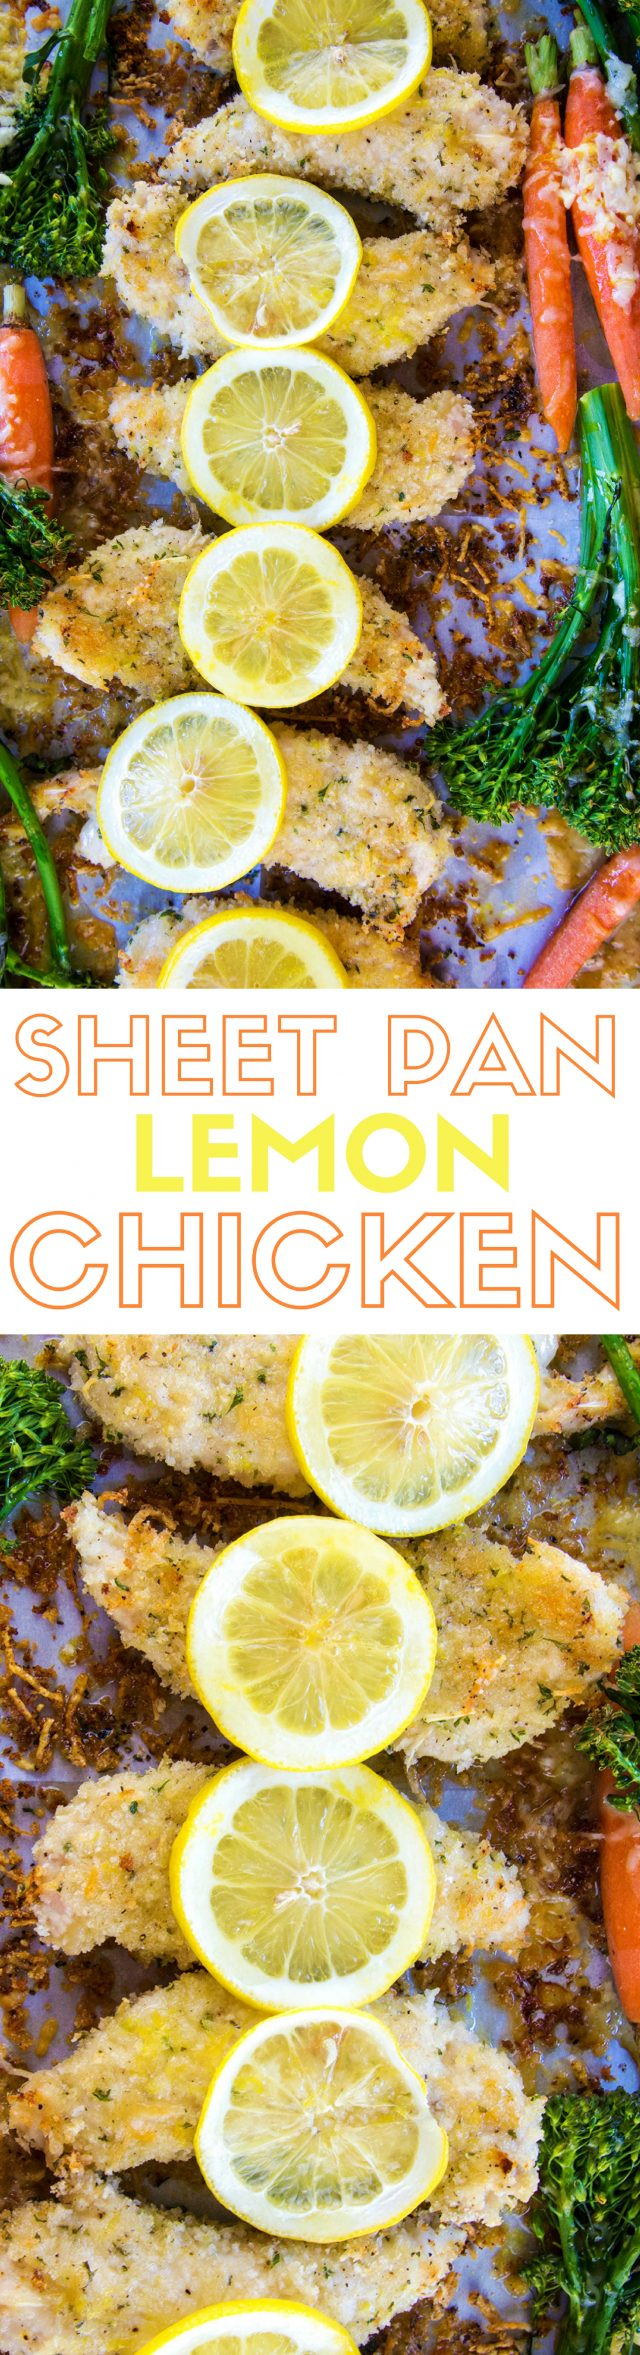 One Sheet Pan Lemon Parmesan Chicken & Vegetables Recipe - Lemon parmesan chicken, covered a light panko crust and roasted vegetables. The best part? It's made on one sheet pan.